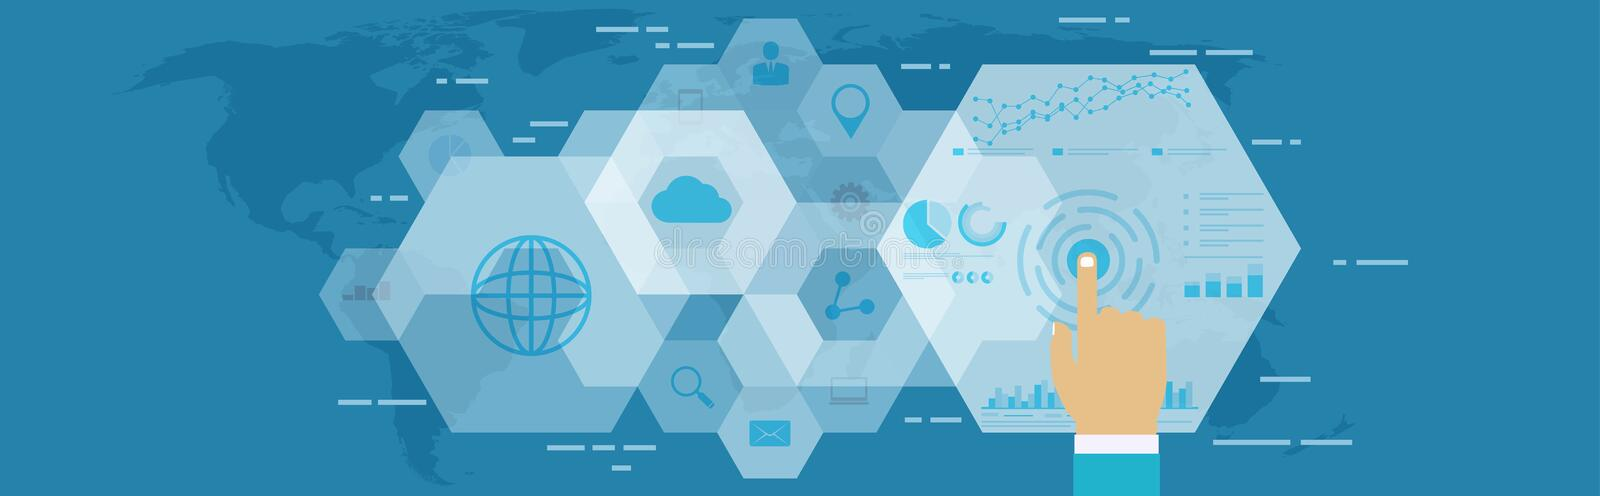 Digital web analytics. Business technology in digital space. Digital web analytics. Business technology in digital space, SEO optimization, marketing concept royalty free illustration